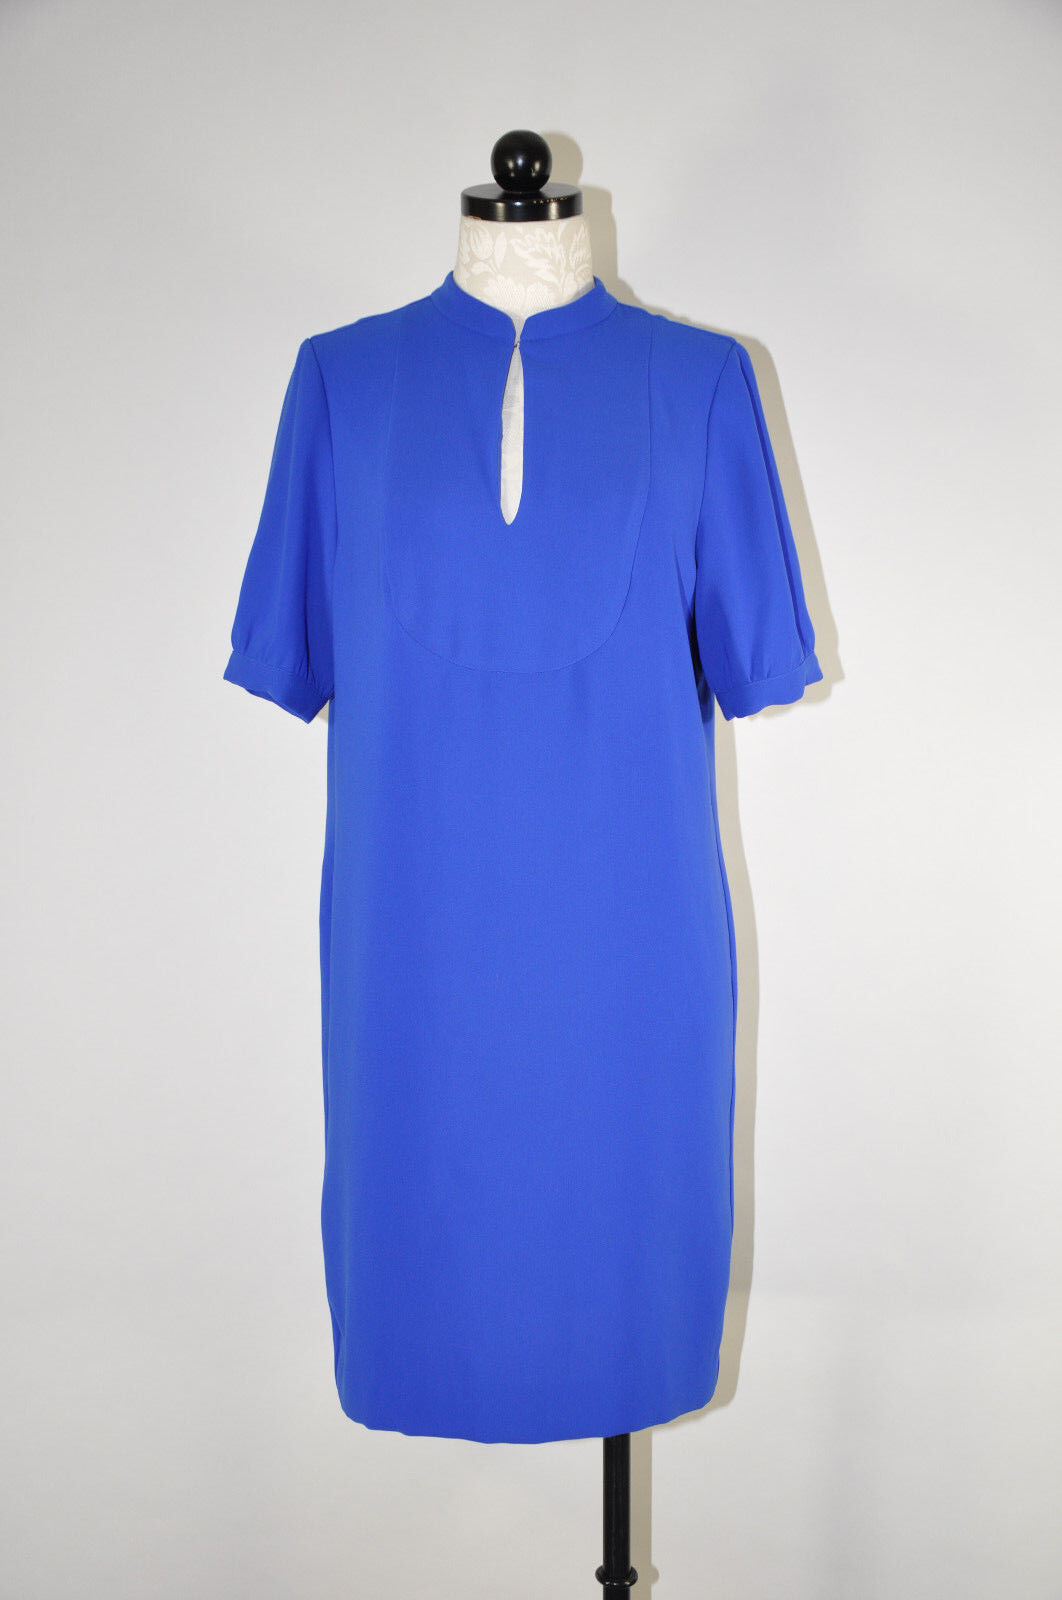 J CREW Cobalt bluee Crepe Collar Short Sleeve Straight Shift Shift Shift Tunic Dress Women 6 9c7bed